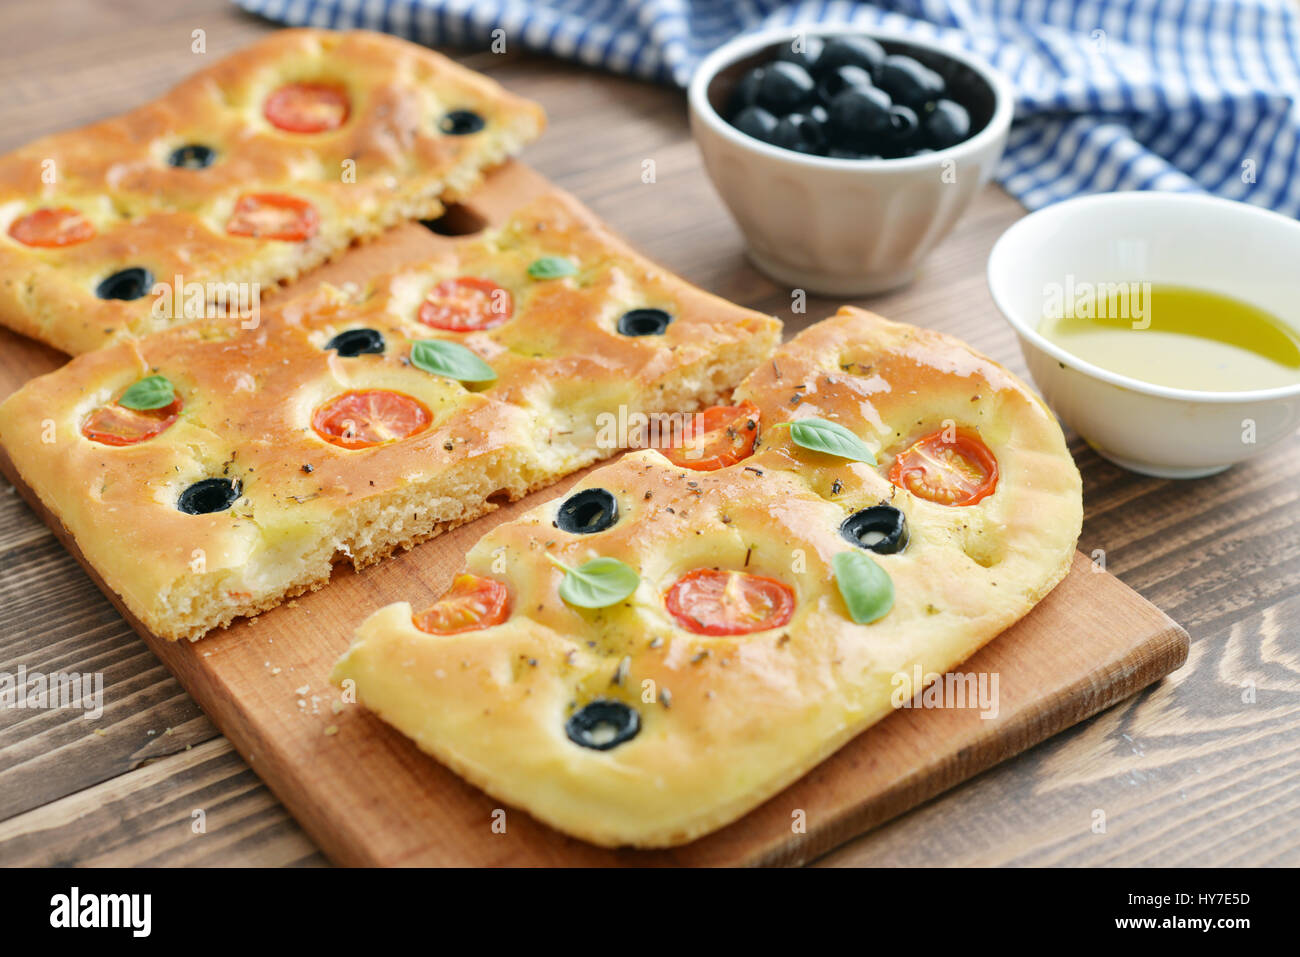 Italian food -  traditional focaccia with cherry tomato and olives on wooden background - Stock Image